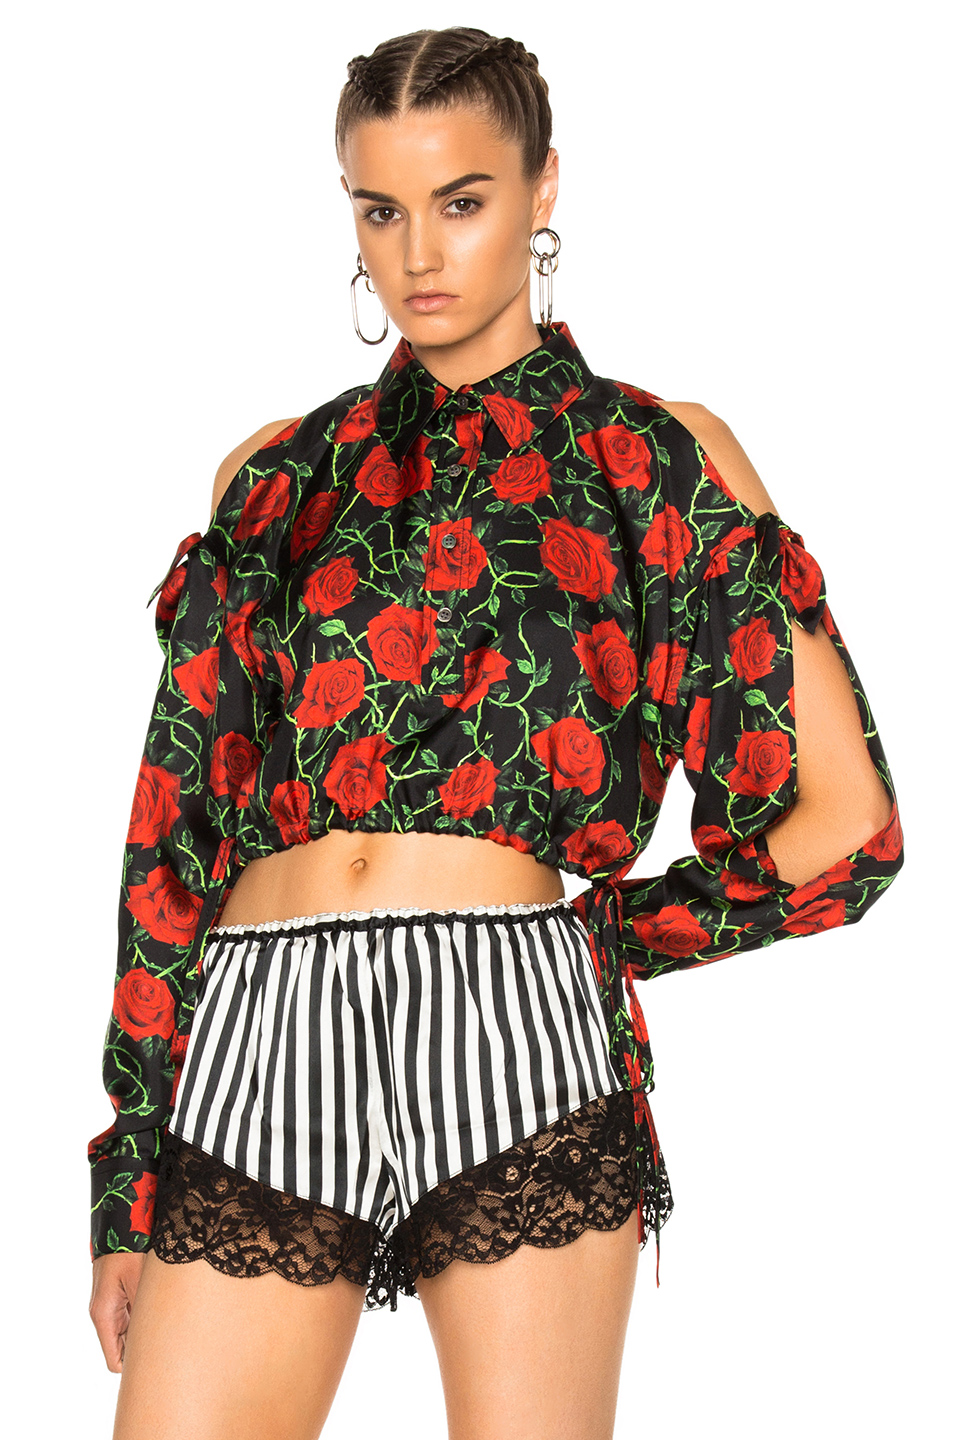 Alexander Wang Cropped Oversized Men's Shirt in Black,Floral